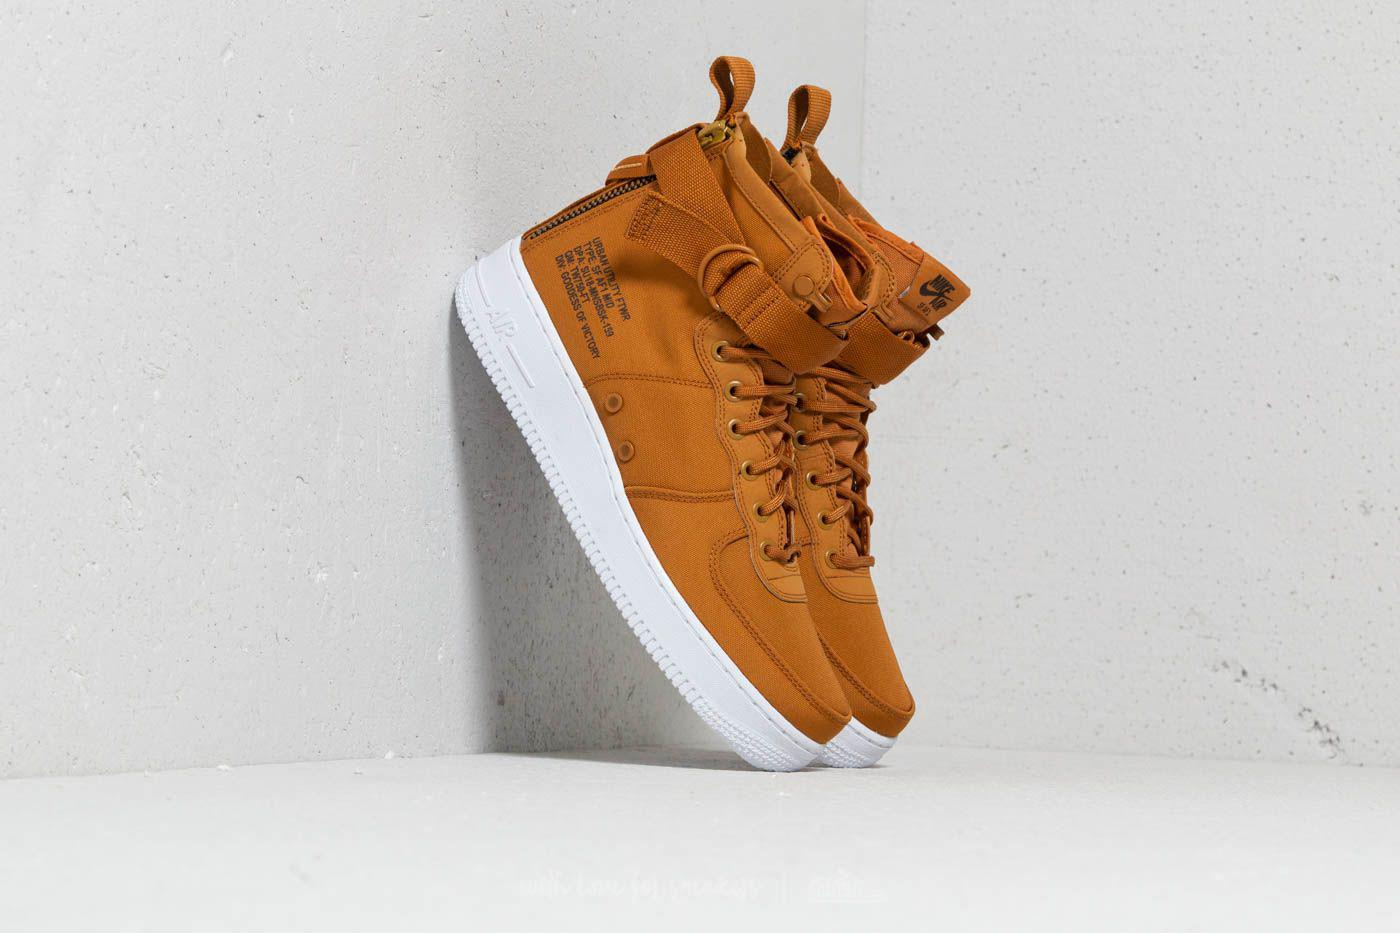 Lyst - Nike Sf Air Force 1 Mid Desert Ochre  Sequoia-white for Men 5ce9756883dd